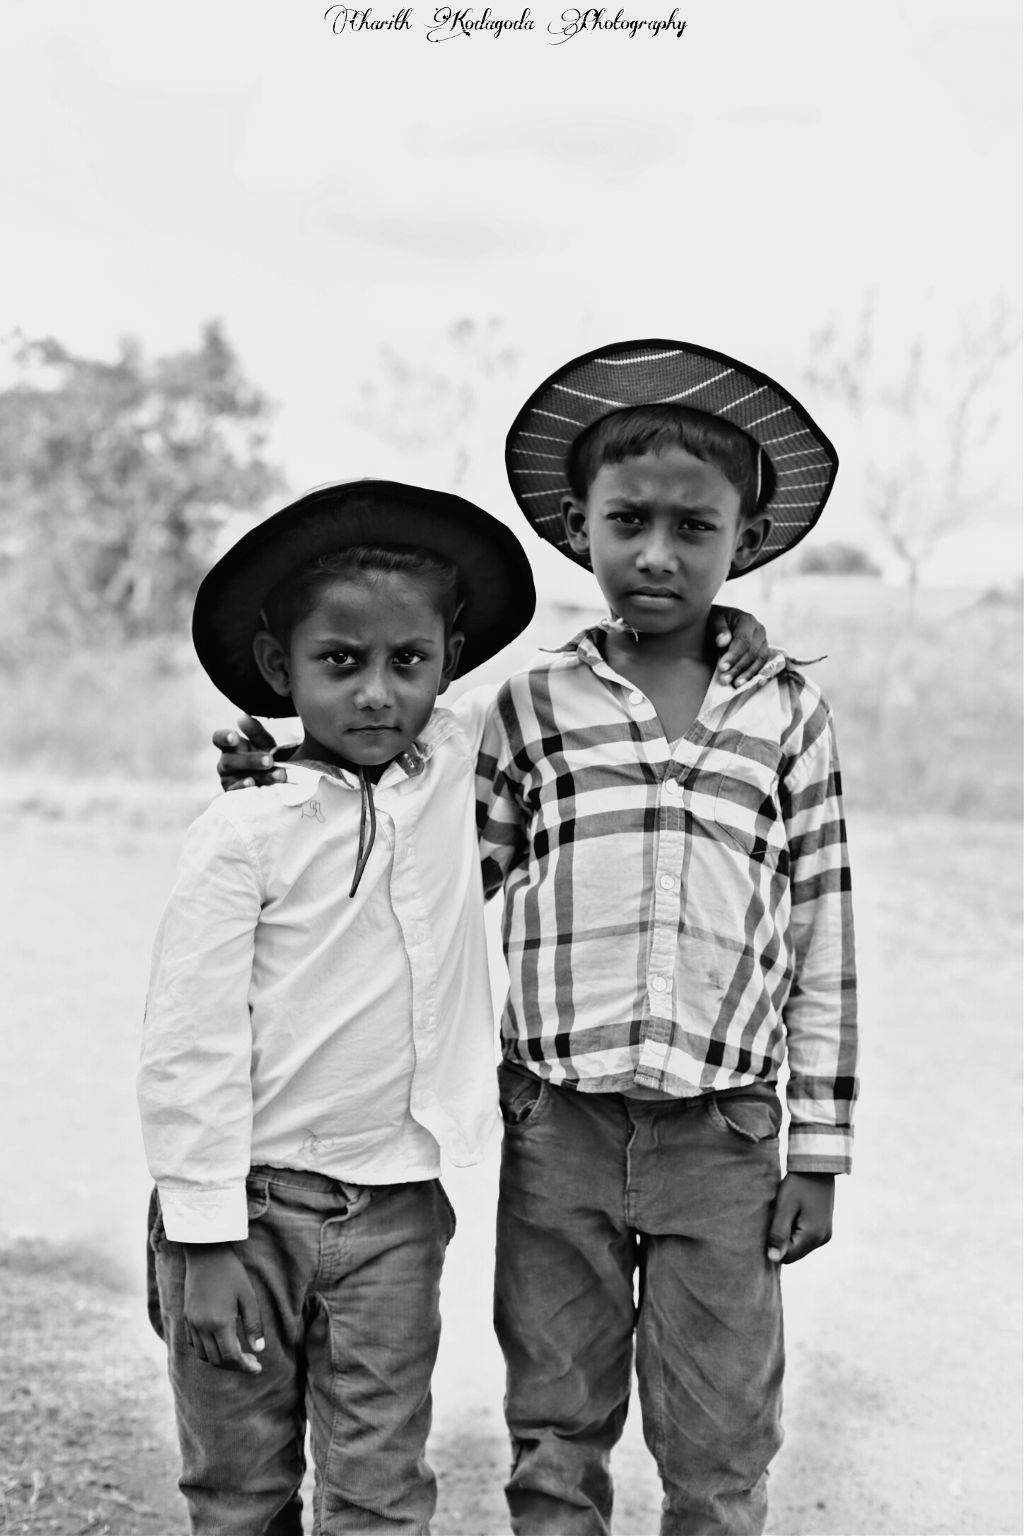 #blackandwhite #cute #emotions #love #photography #people #travel #canon #canon6d #canonphotography #srilanka #asia #brothers